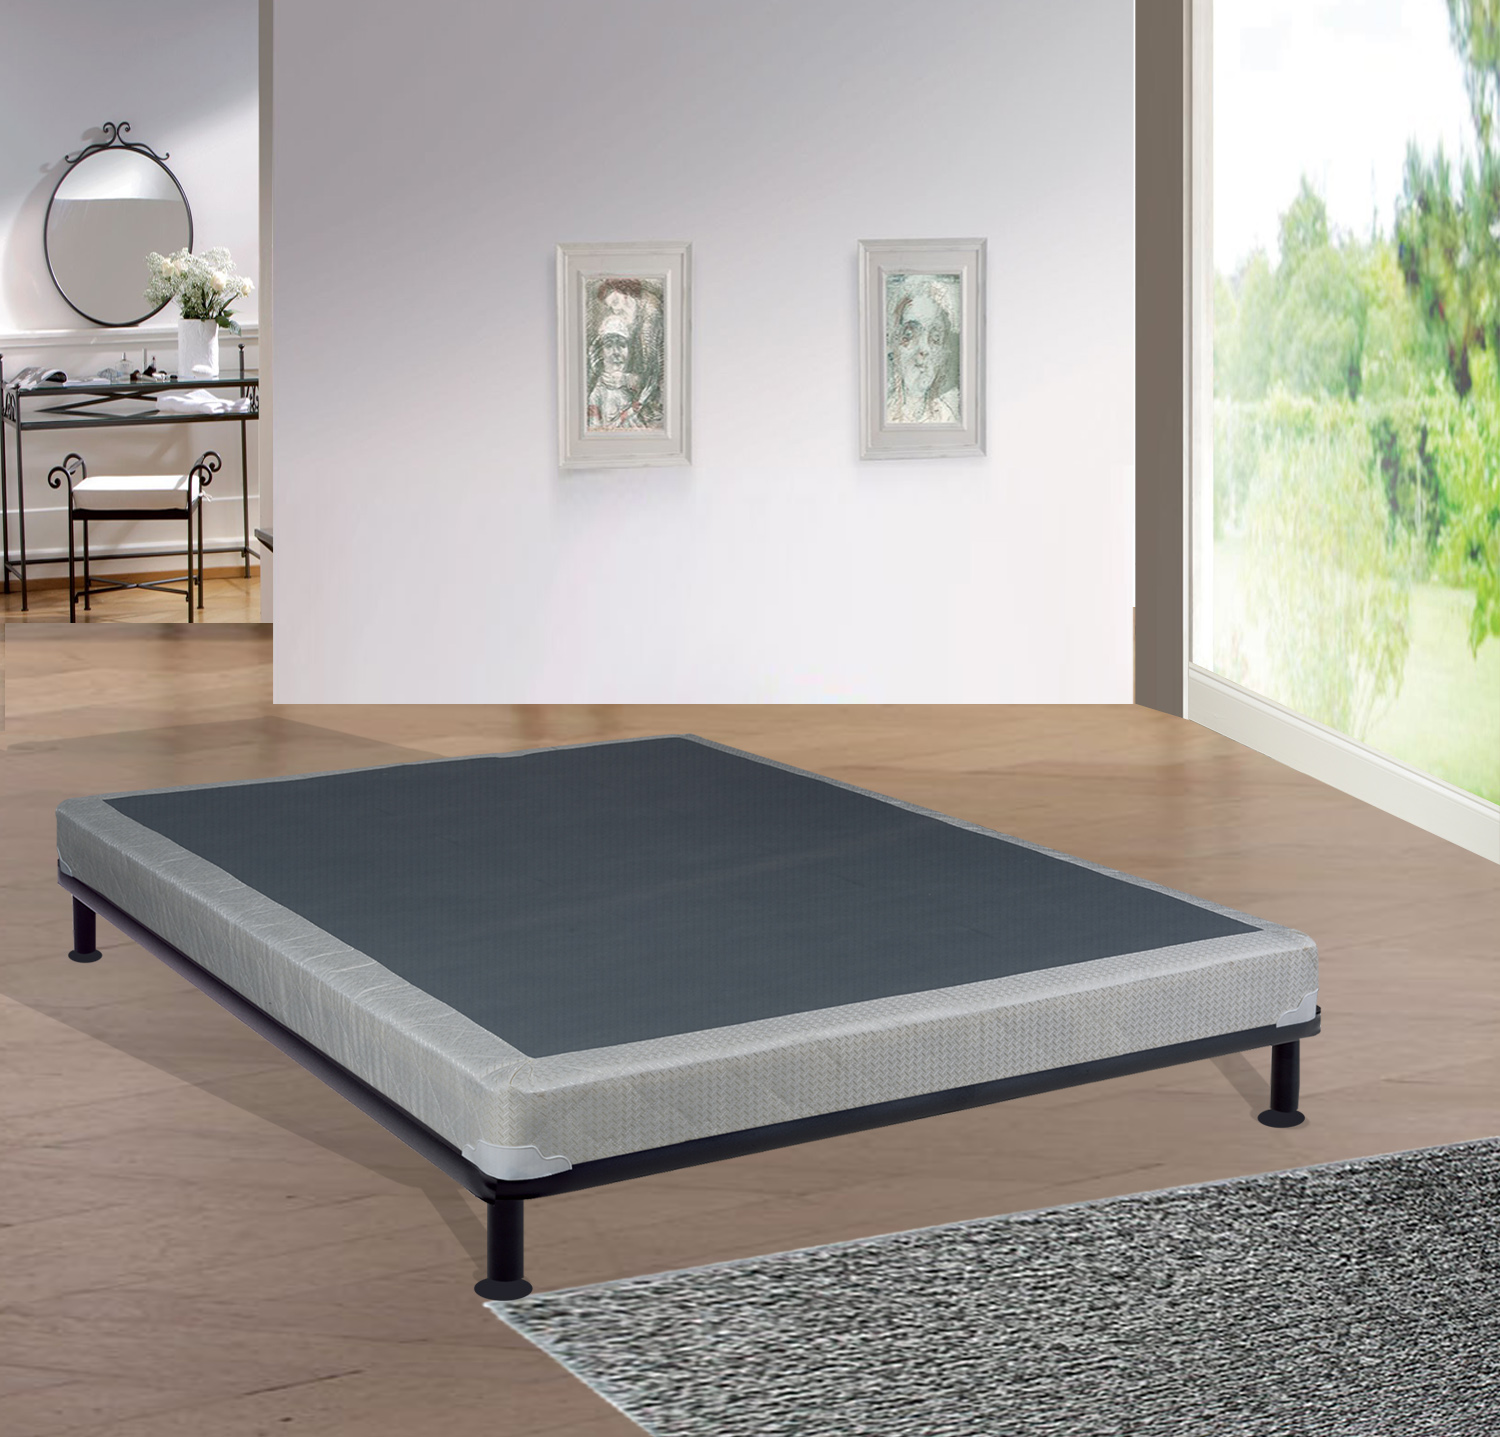 "WAYTON, 4"" Assembled Wood Box Spring/Foundation for Mattress, 